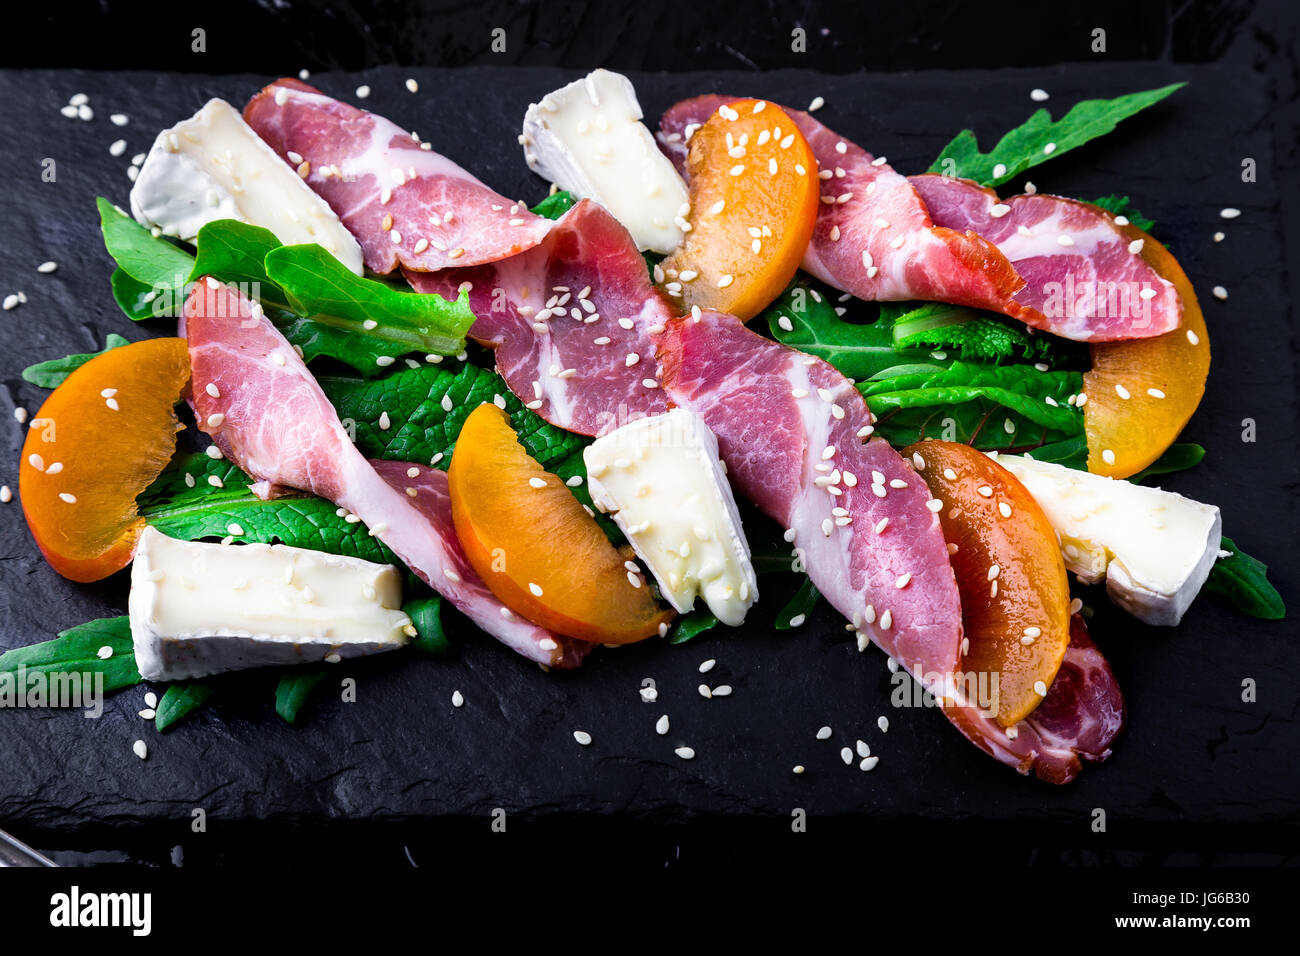 Salad with ham jamon serrano, camembert, melon, arugula on black stone slate plate on black background. Top view. - Stock Image